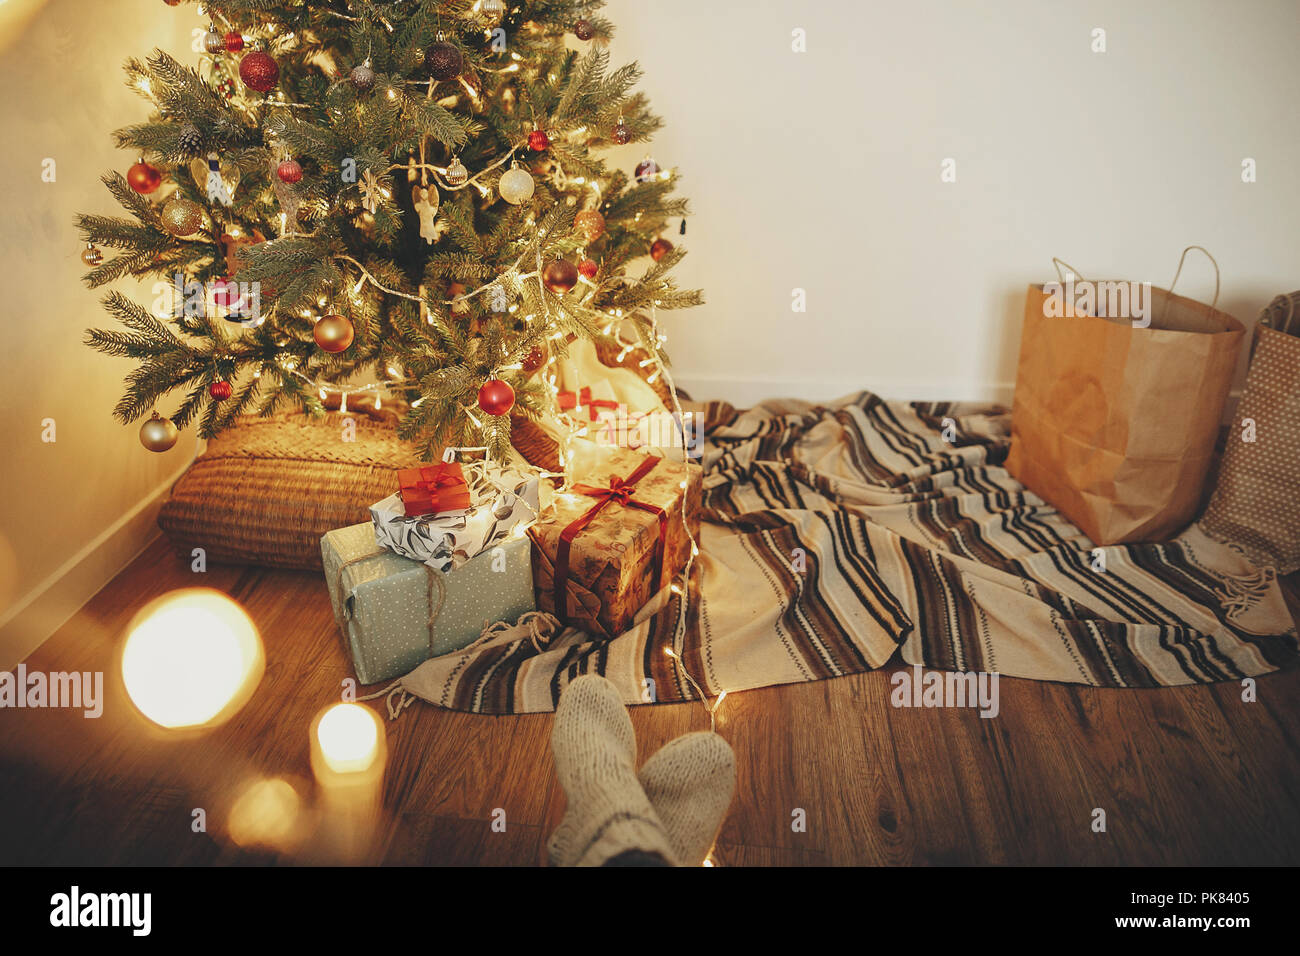 5418b7e5d43 girl legs in stylish warm sock sitting with garland lights at christmas  tree with presents and gifts. socks on rug in festive room. decor for  winter h